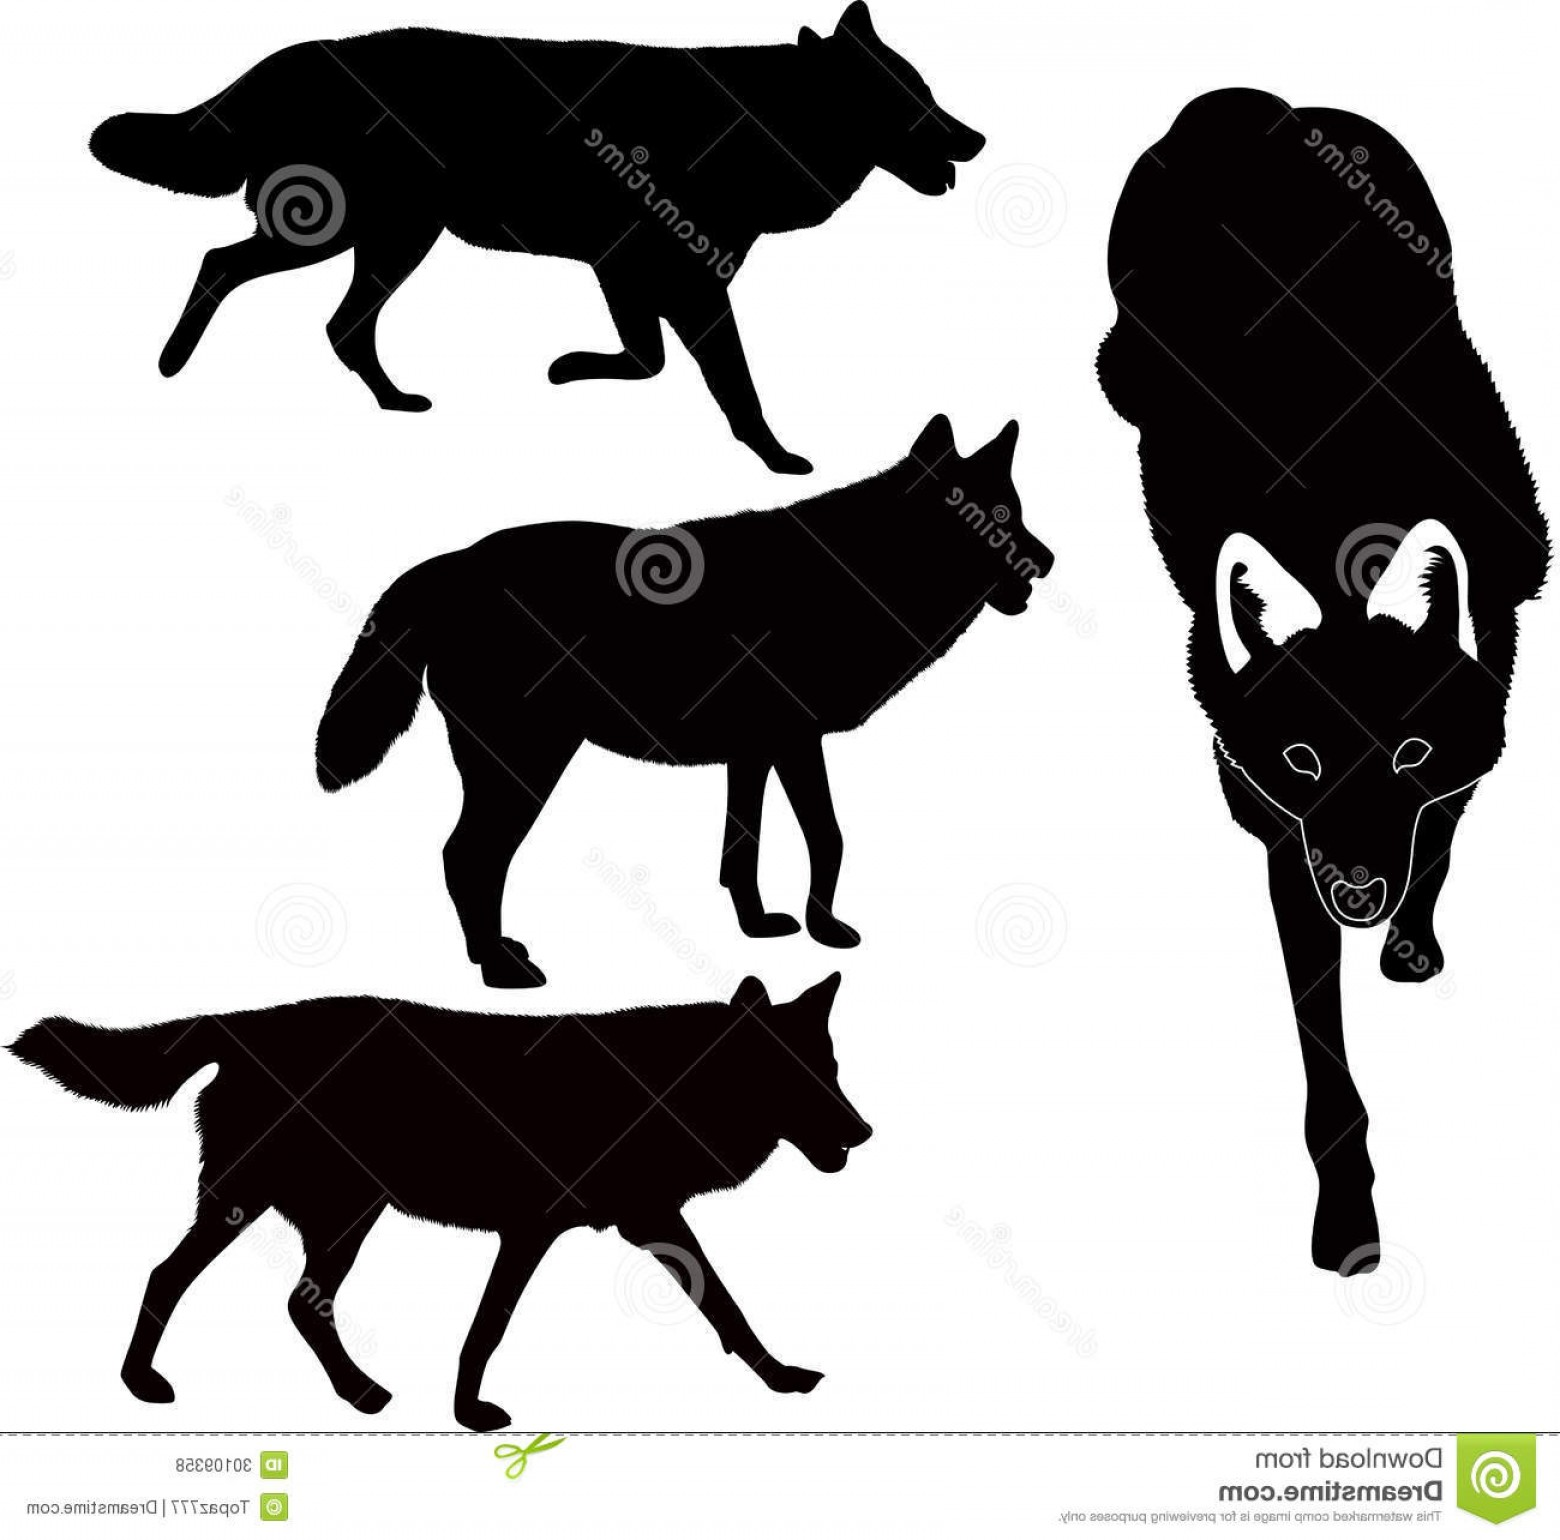 Isolated free stock clipart photos image black and white download Royalty Free Stock Photos Wolves Animals Vector Isolated White ... image black and white download